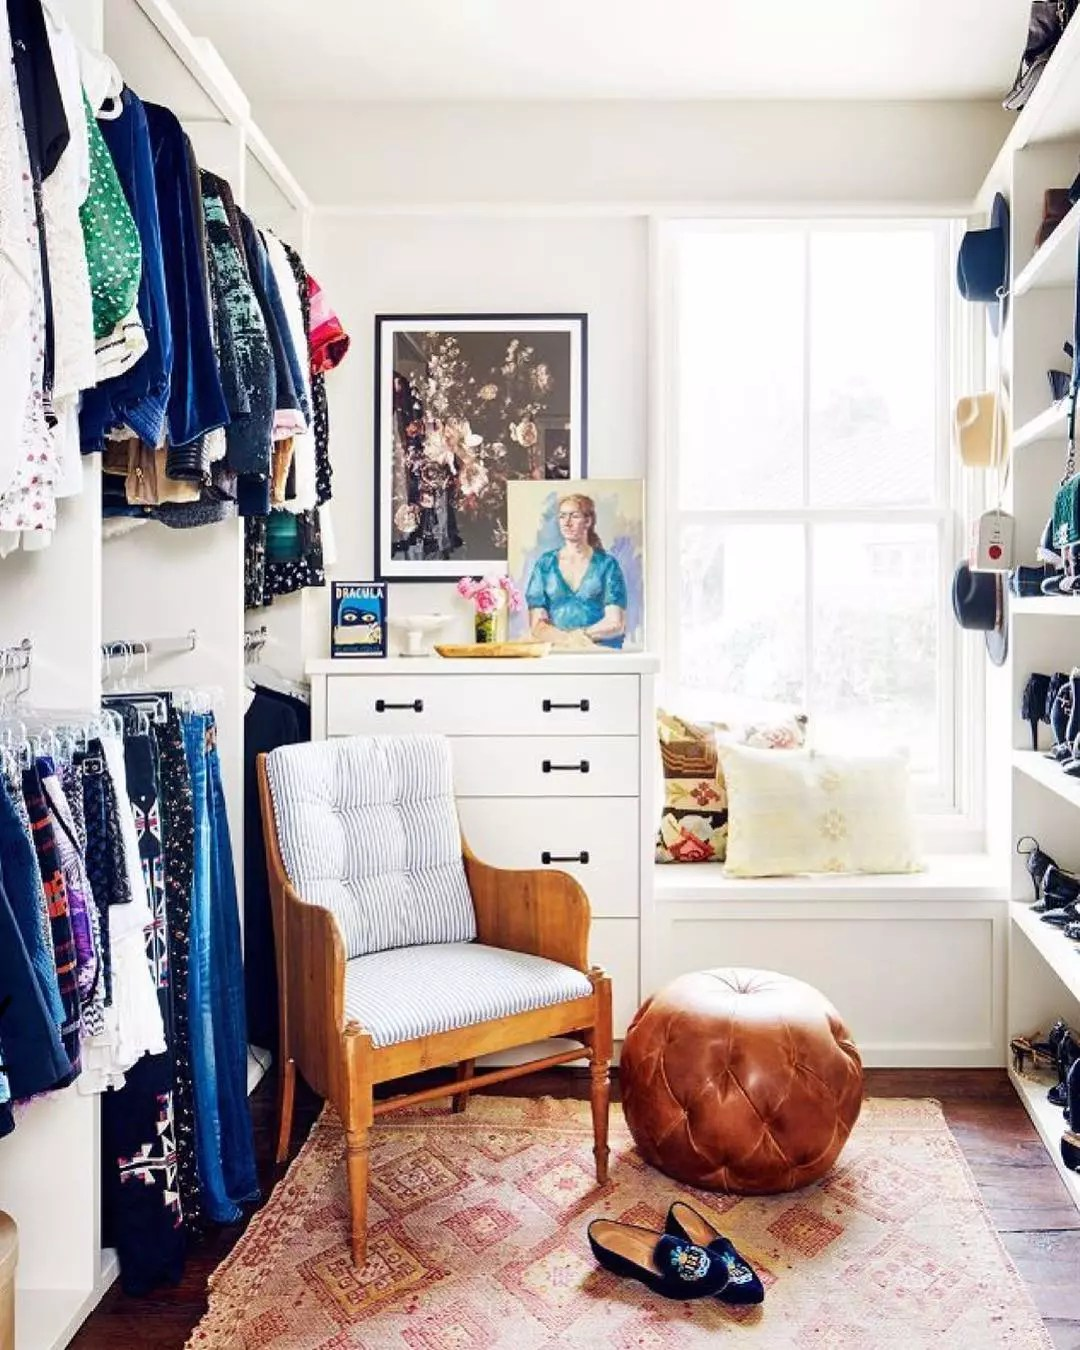 walk in closet with small chair and ottoman with dresser in the corner photo by Instagram user @house_of_merci